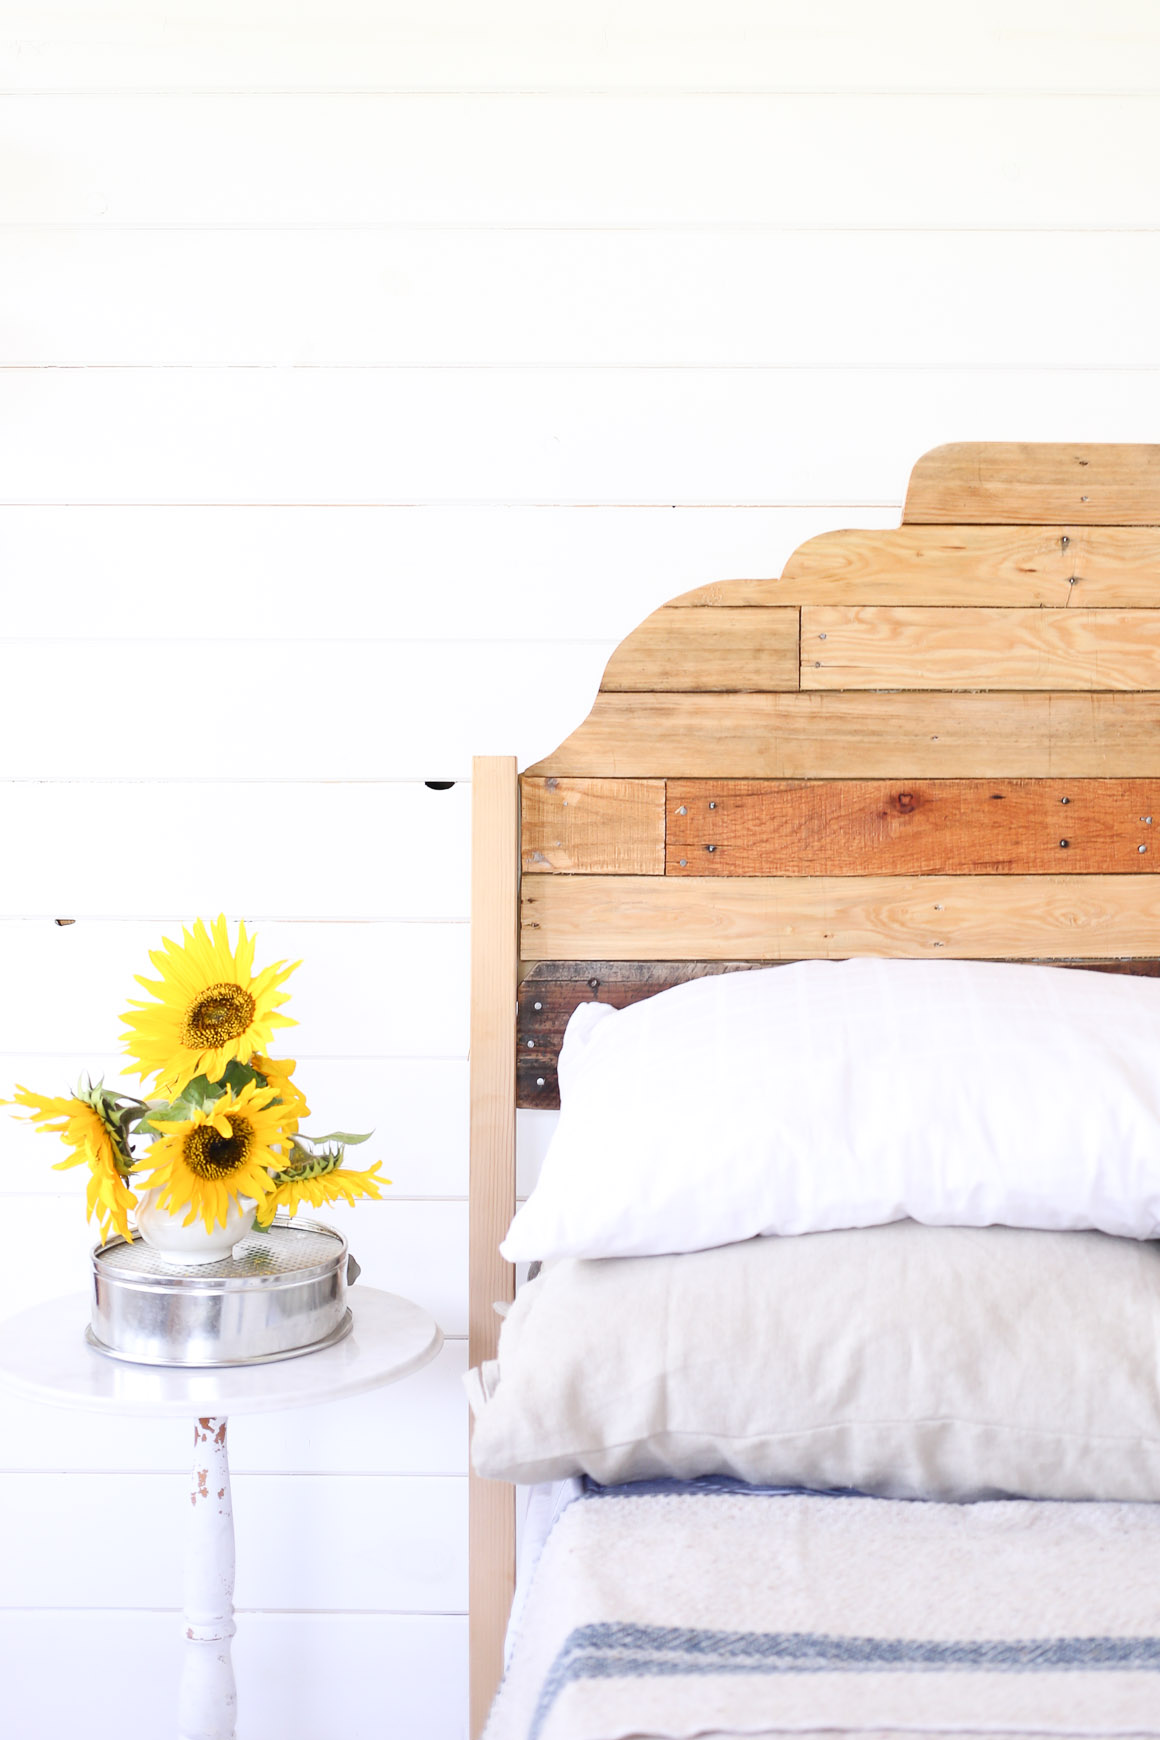 DIY Scallop Pallet Headboard, Rustic Project via Ashlea of This Mamas Dance